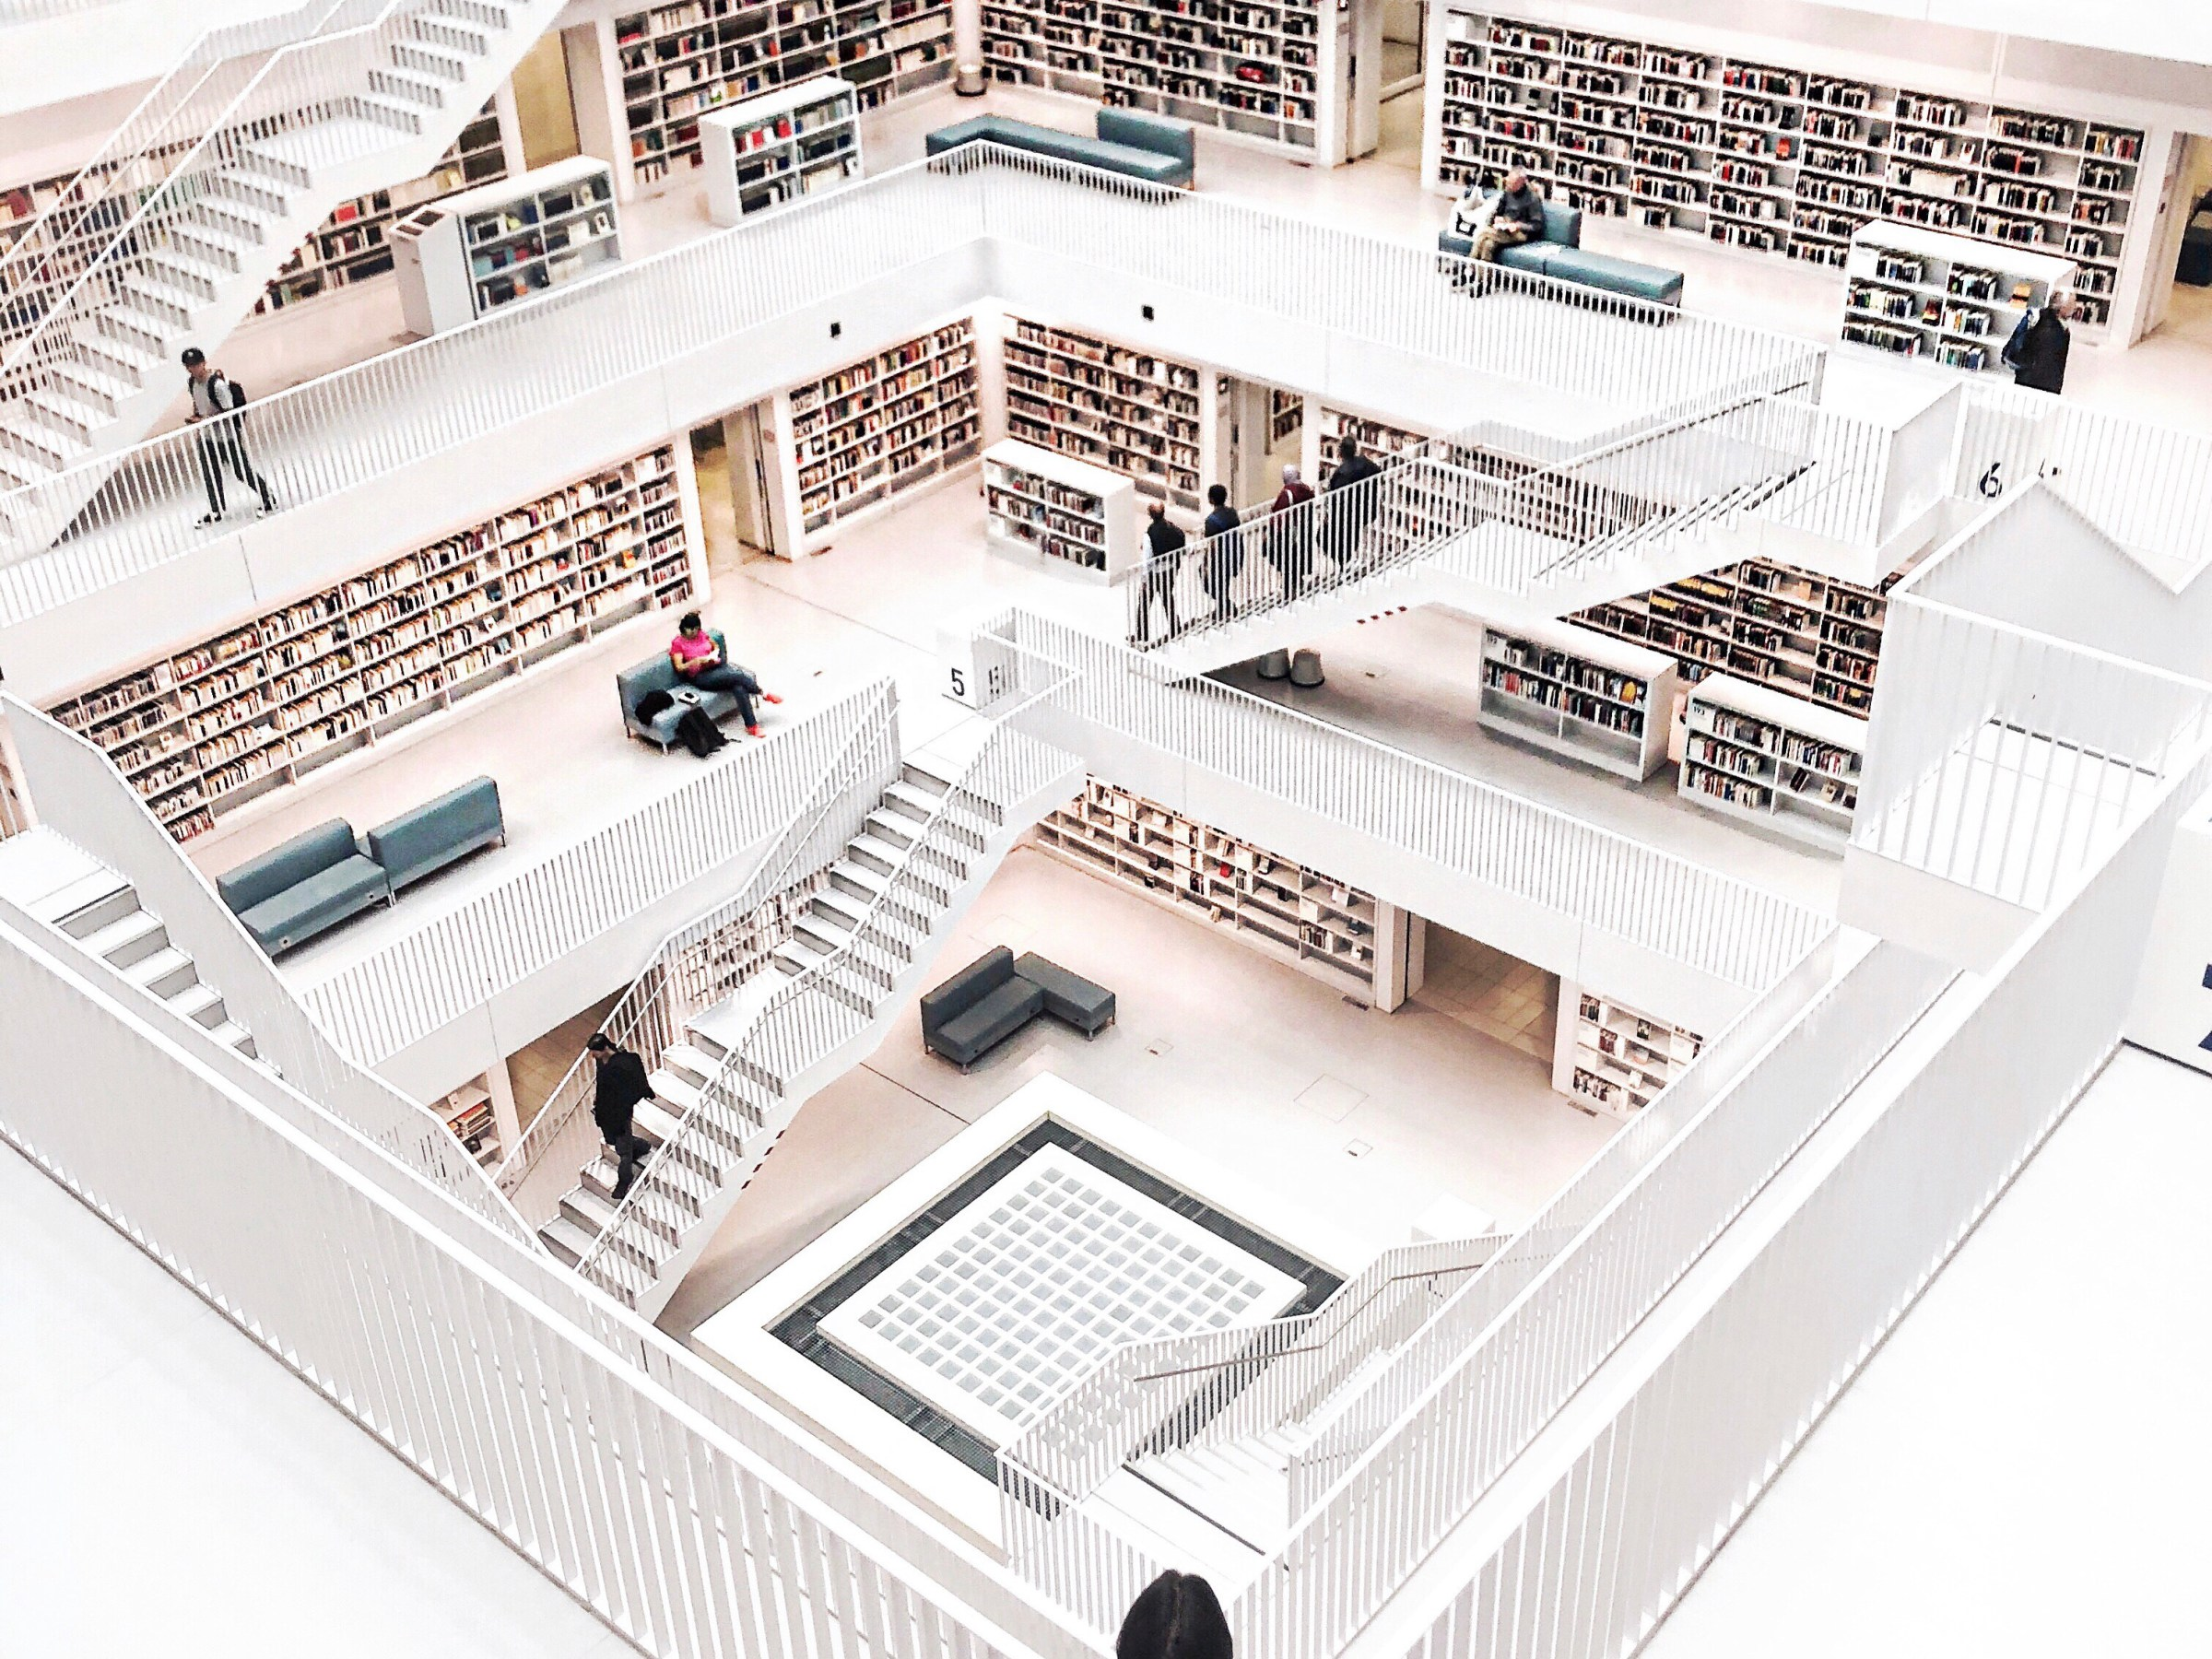 Visiting the prettiest library in Stuttgart